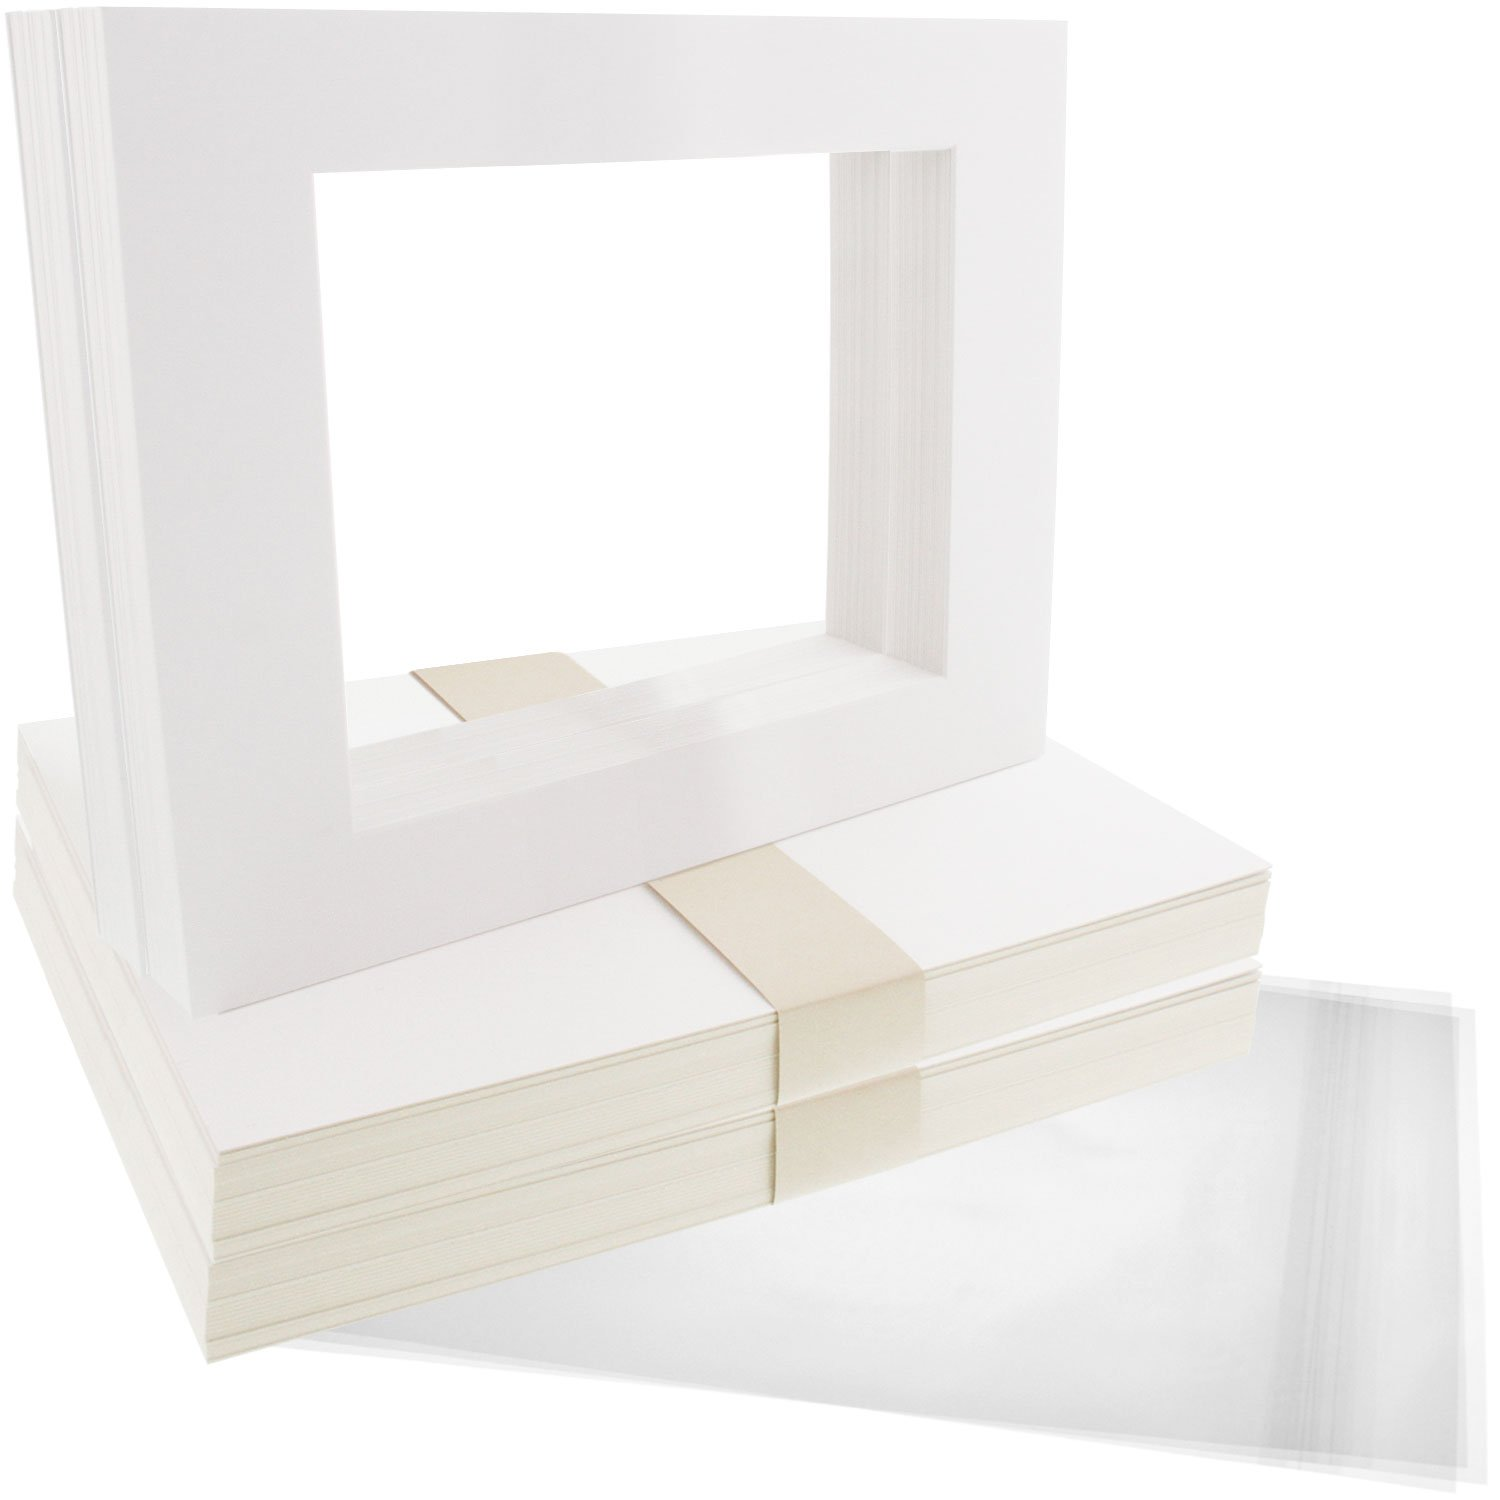 US Art Supply Art Mats Acid-Free Pre-Cut 5x7 White Picture Mat Matte Sets. Includes a Pack of 50 White Core Bevel Cut Mattes for 4x6 Photos, Pack of 50 Backers & 50 Clear Sleeve Bags